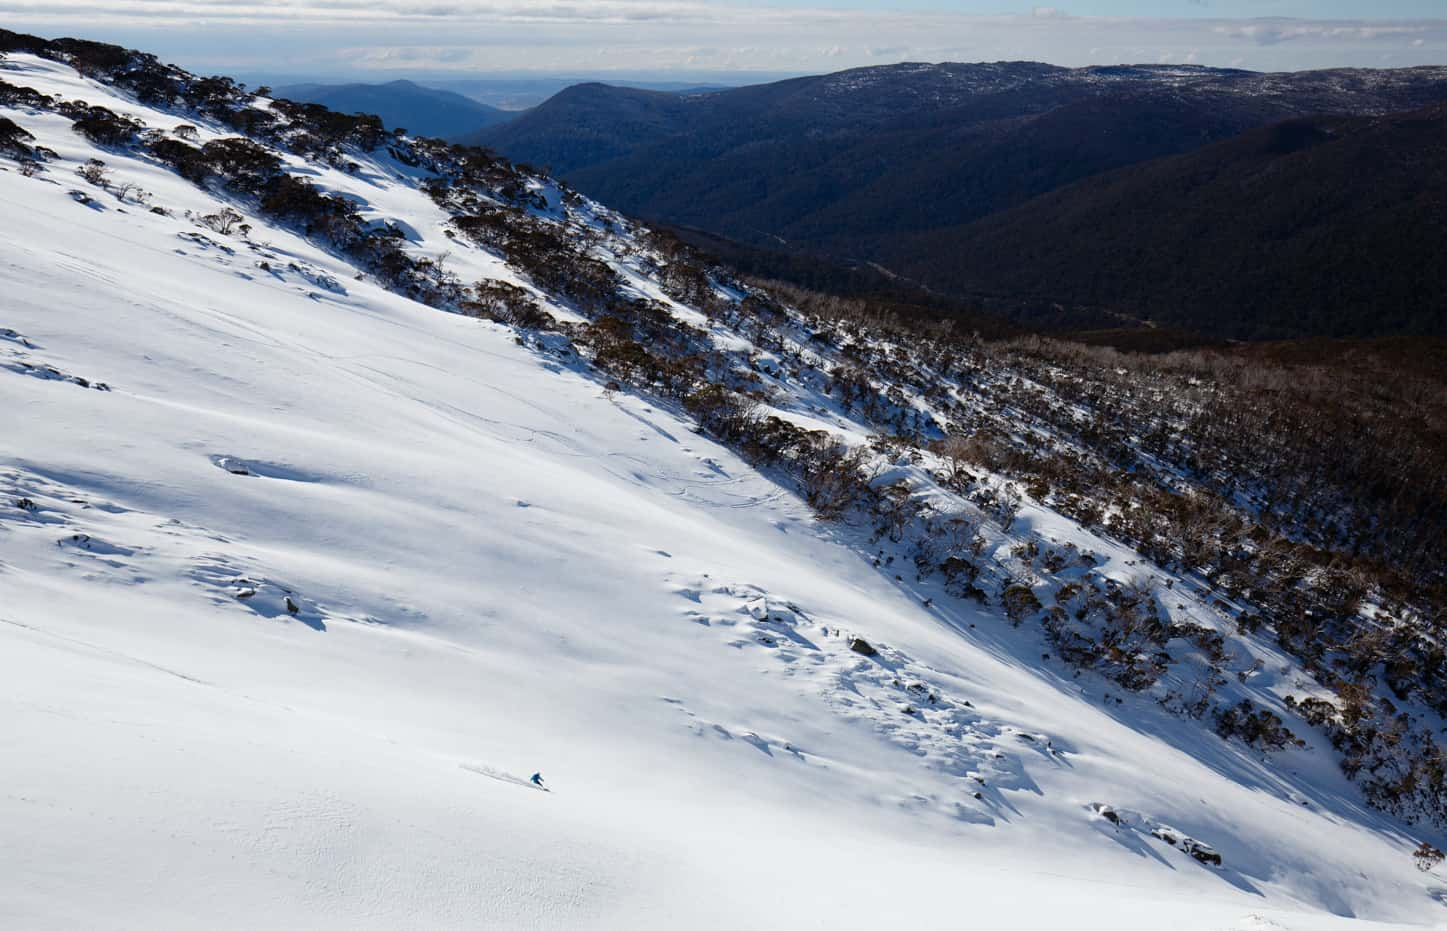 Australia - Twin Valleys, A Backcountry Experience For A Sidecountry Effort